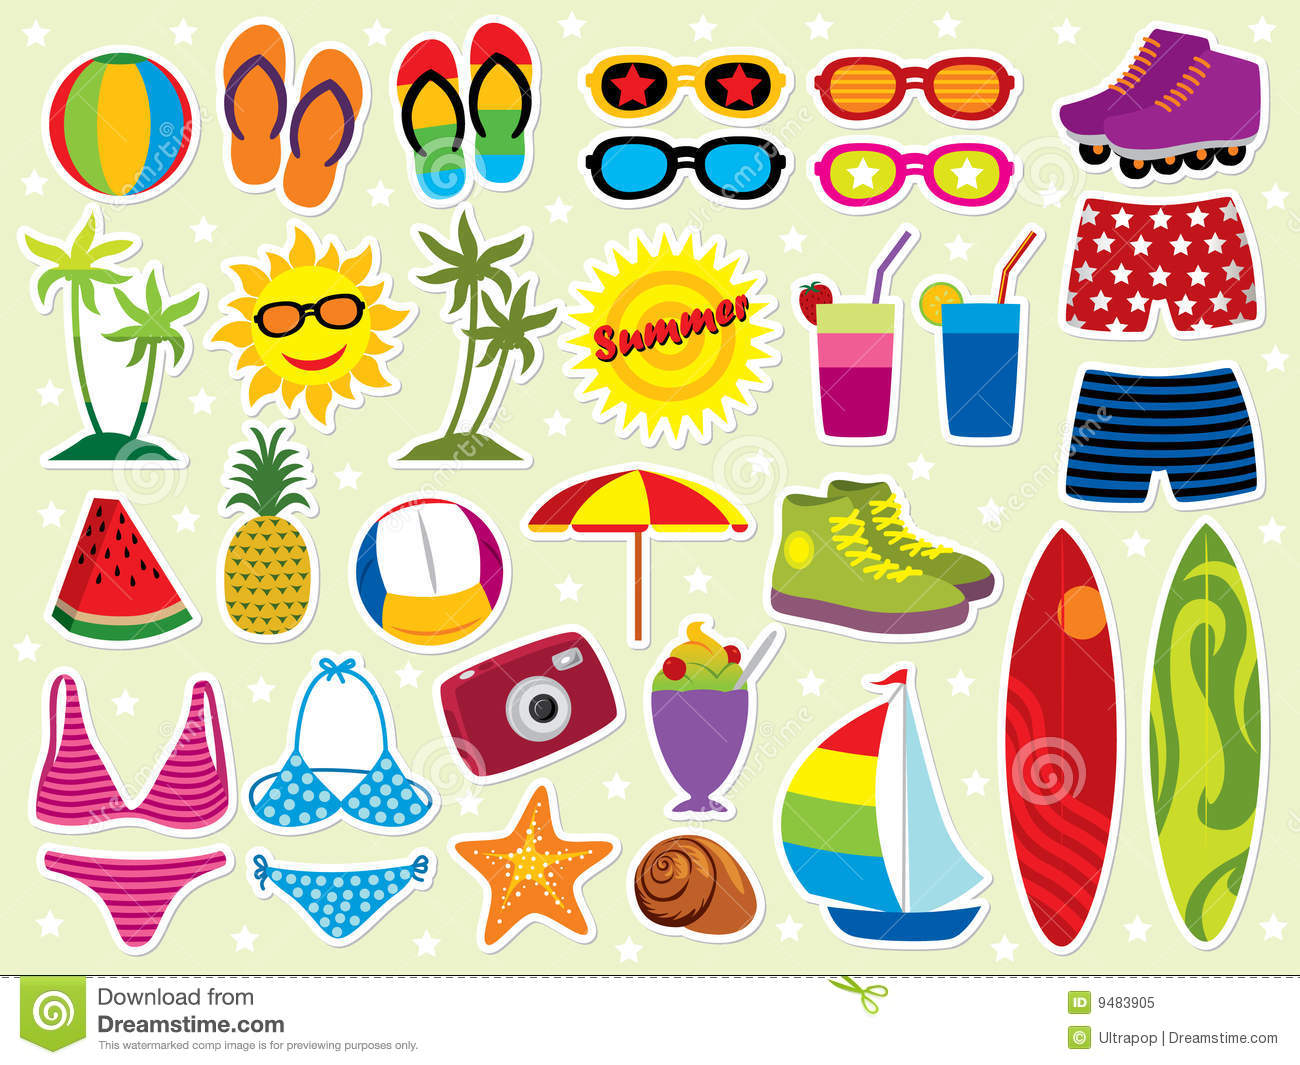 Summer holidays icon set. Please visit my portfolio for more summer